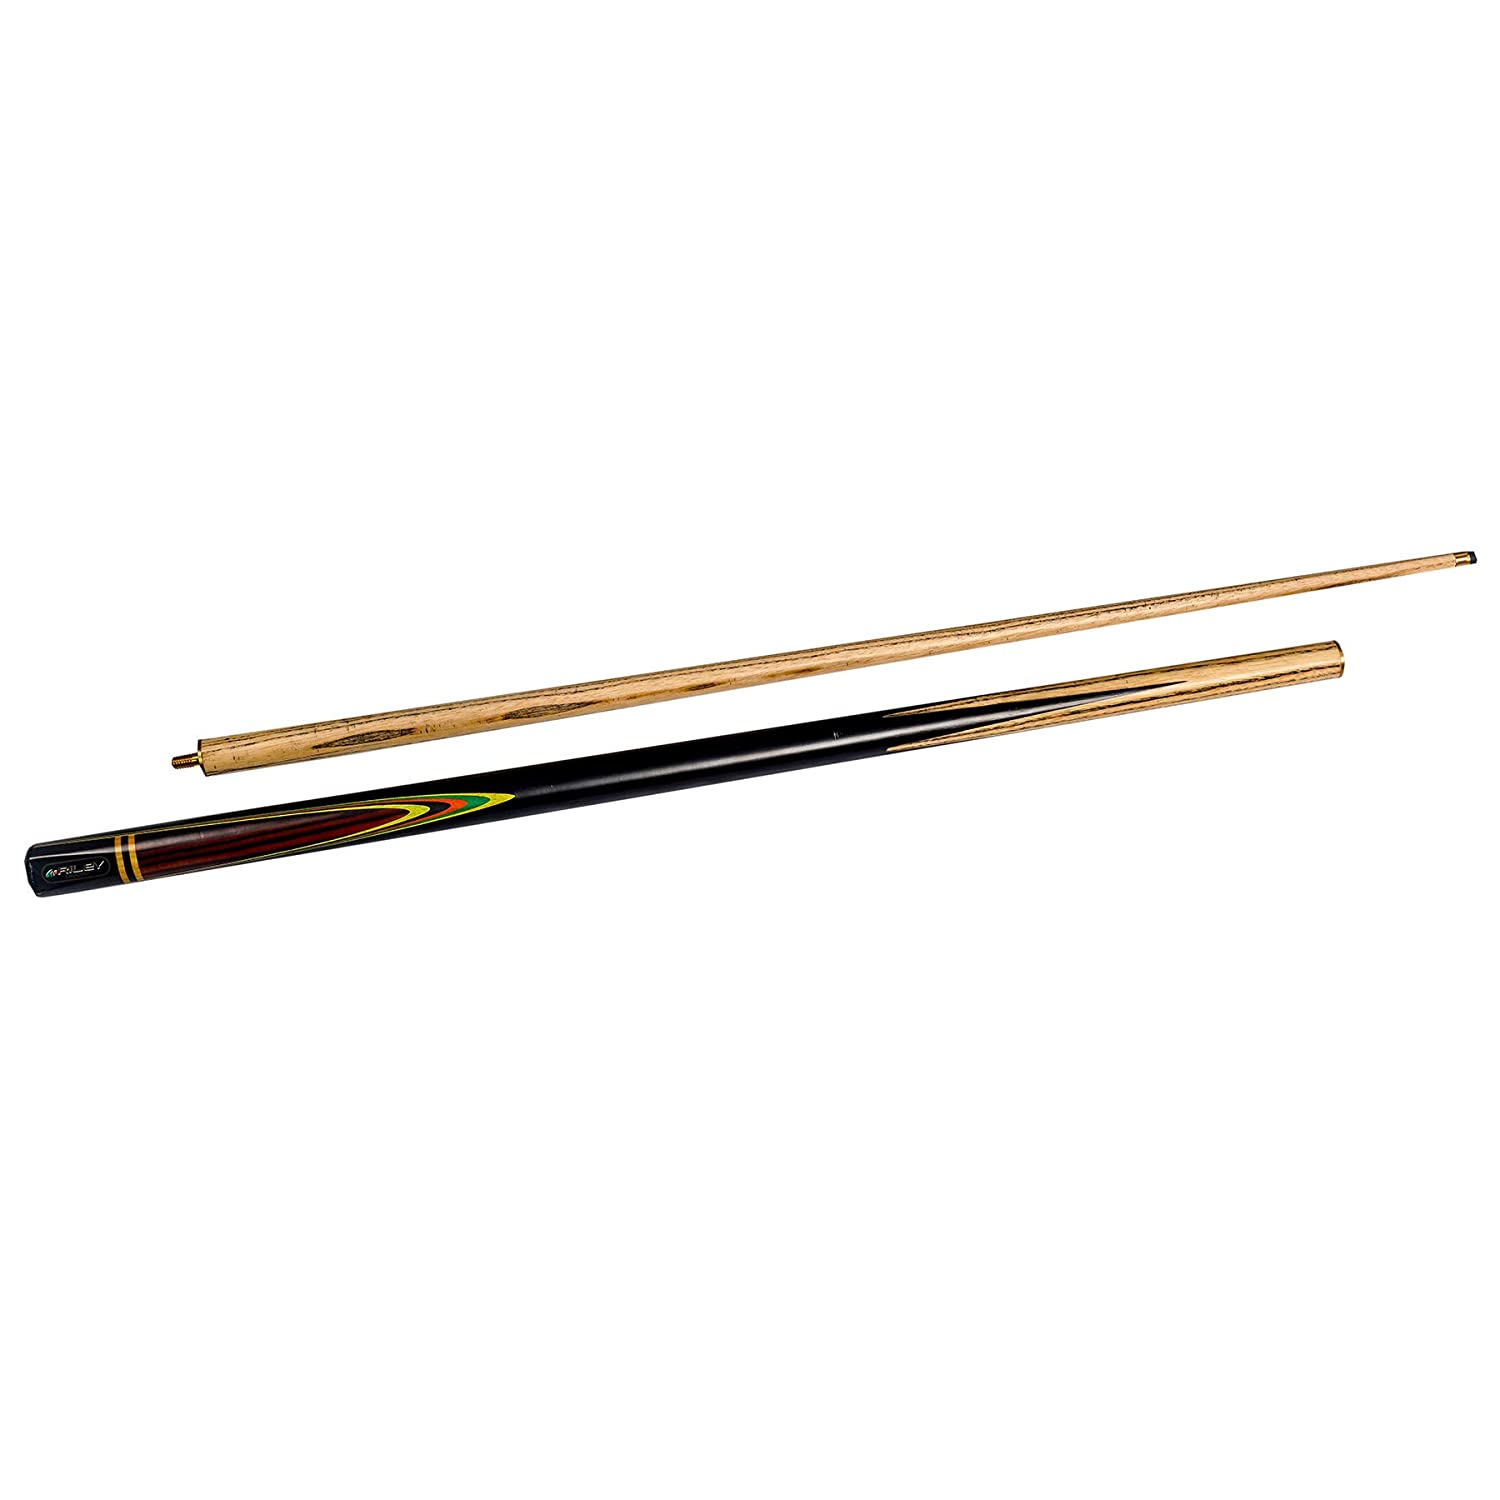 Snookers, Pool, Billiards Cue Stick